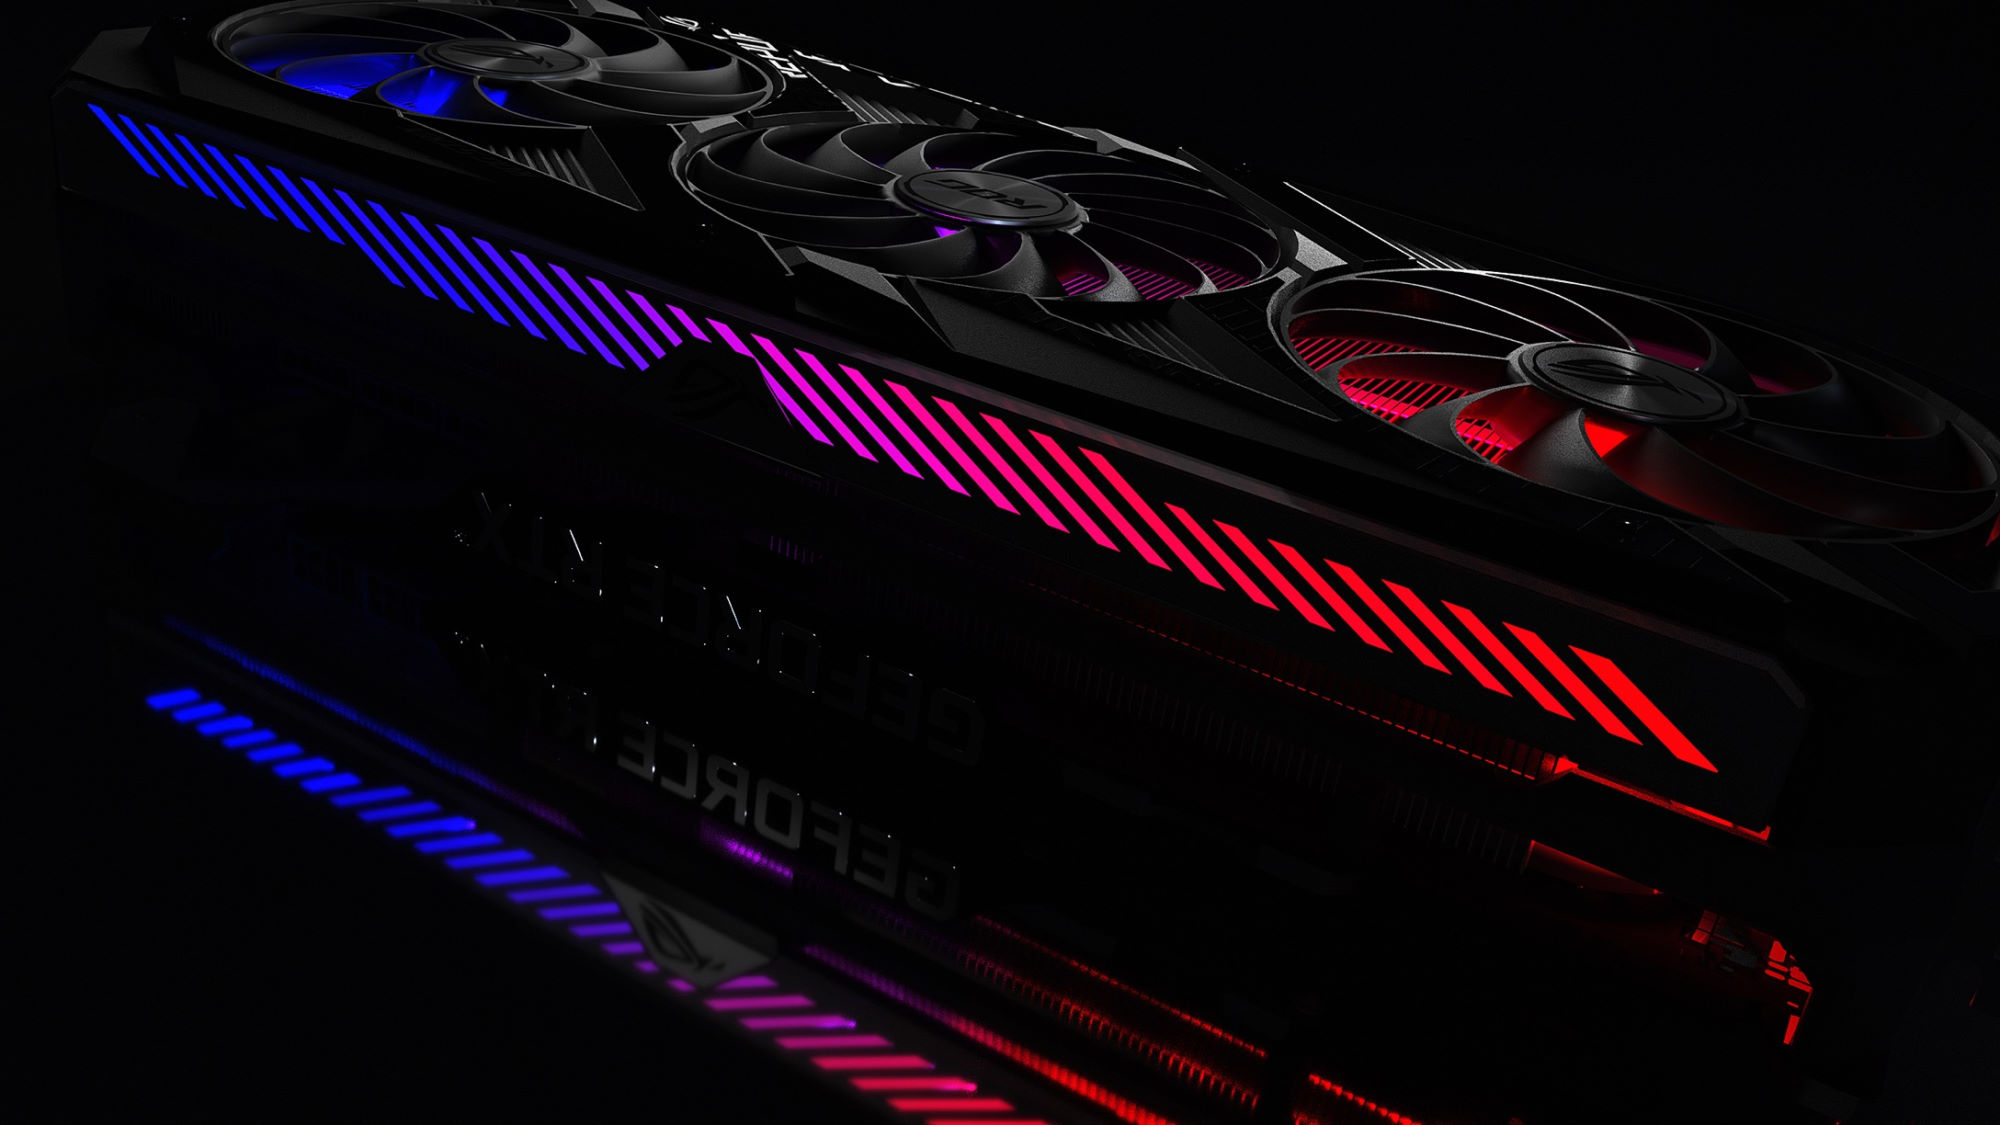 1598958203986 - Asus Nvidia Geforce RTX 3090 & 3080 Press Release